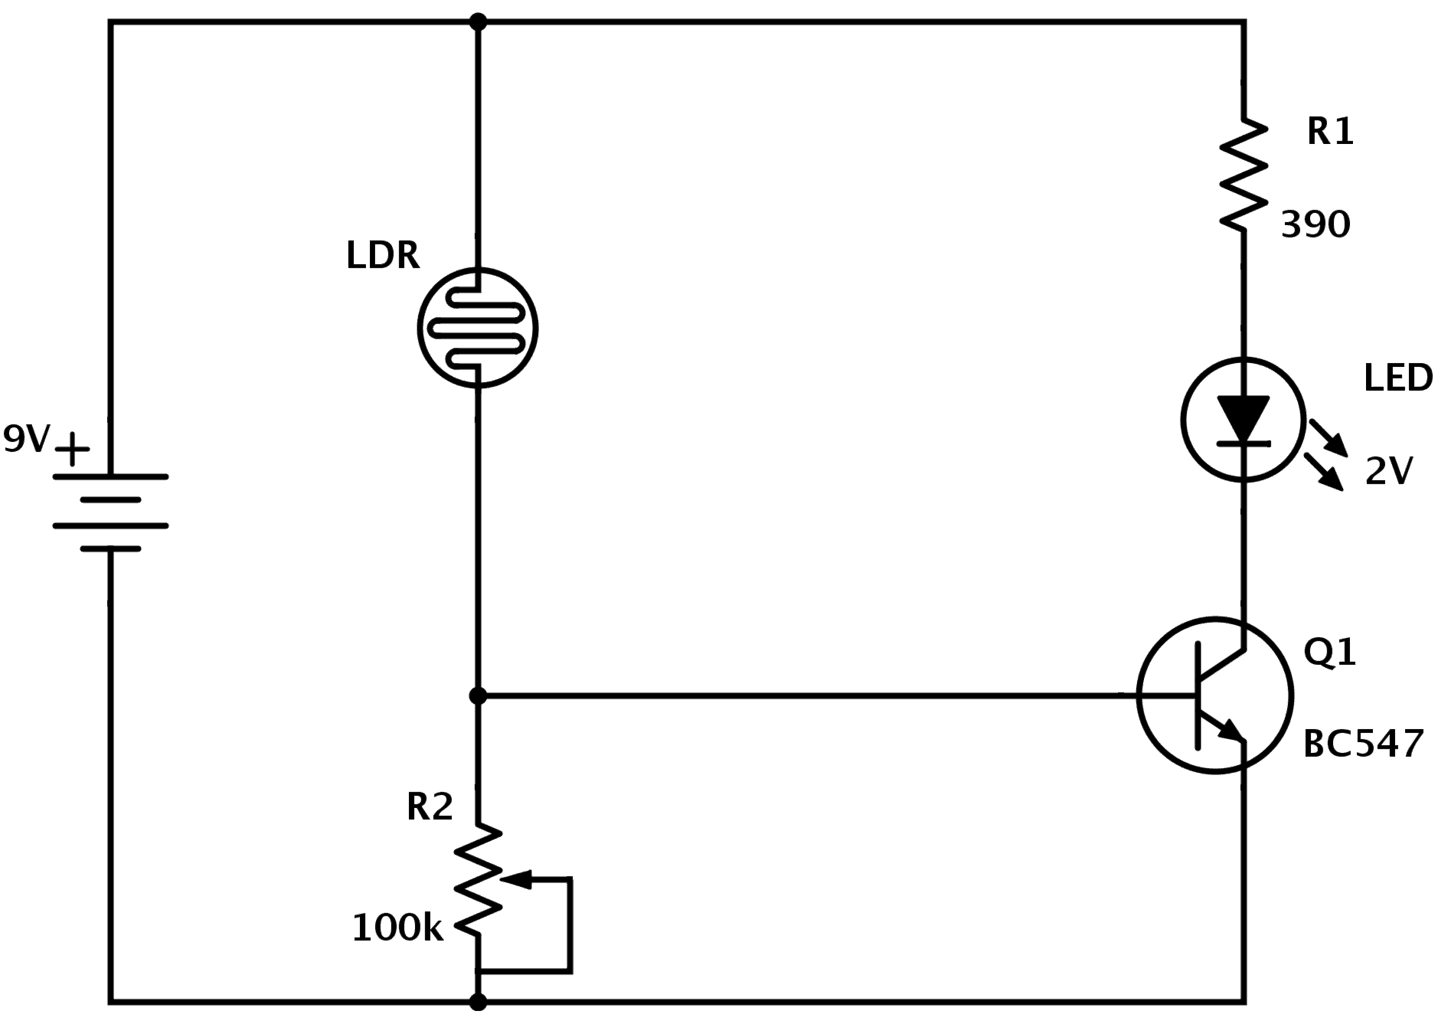 Circuit Diagram How To Read And Understand Any Schematic Following Table Represents The Wiring Connections That Worked For Me Ldr